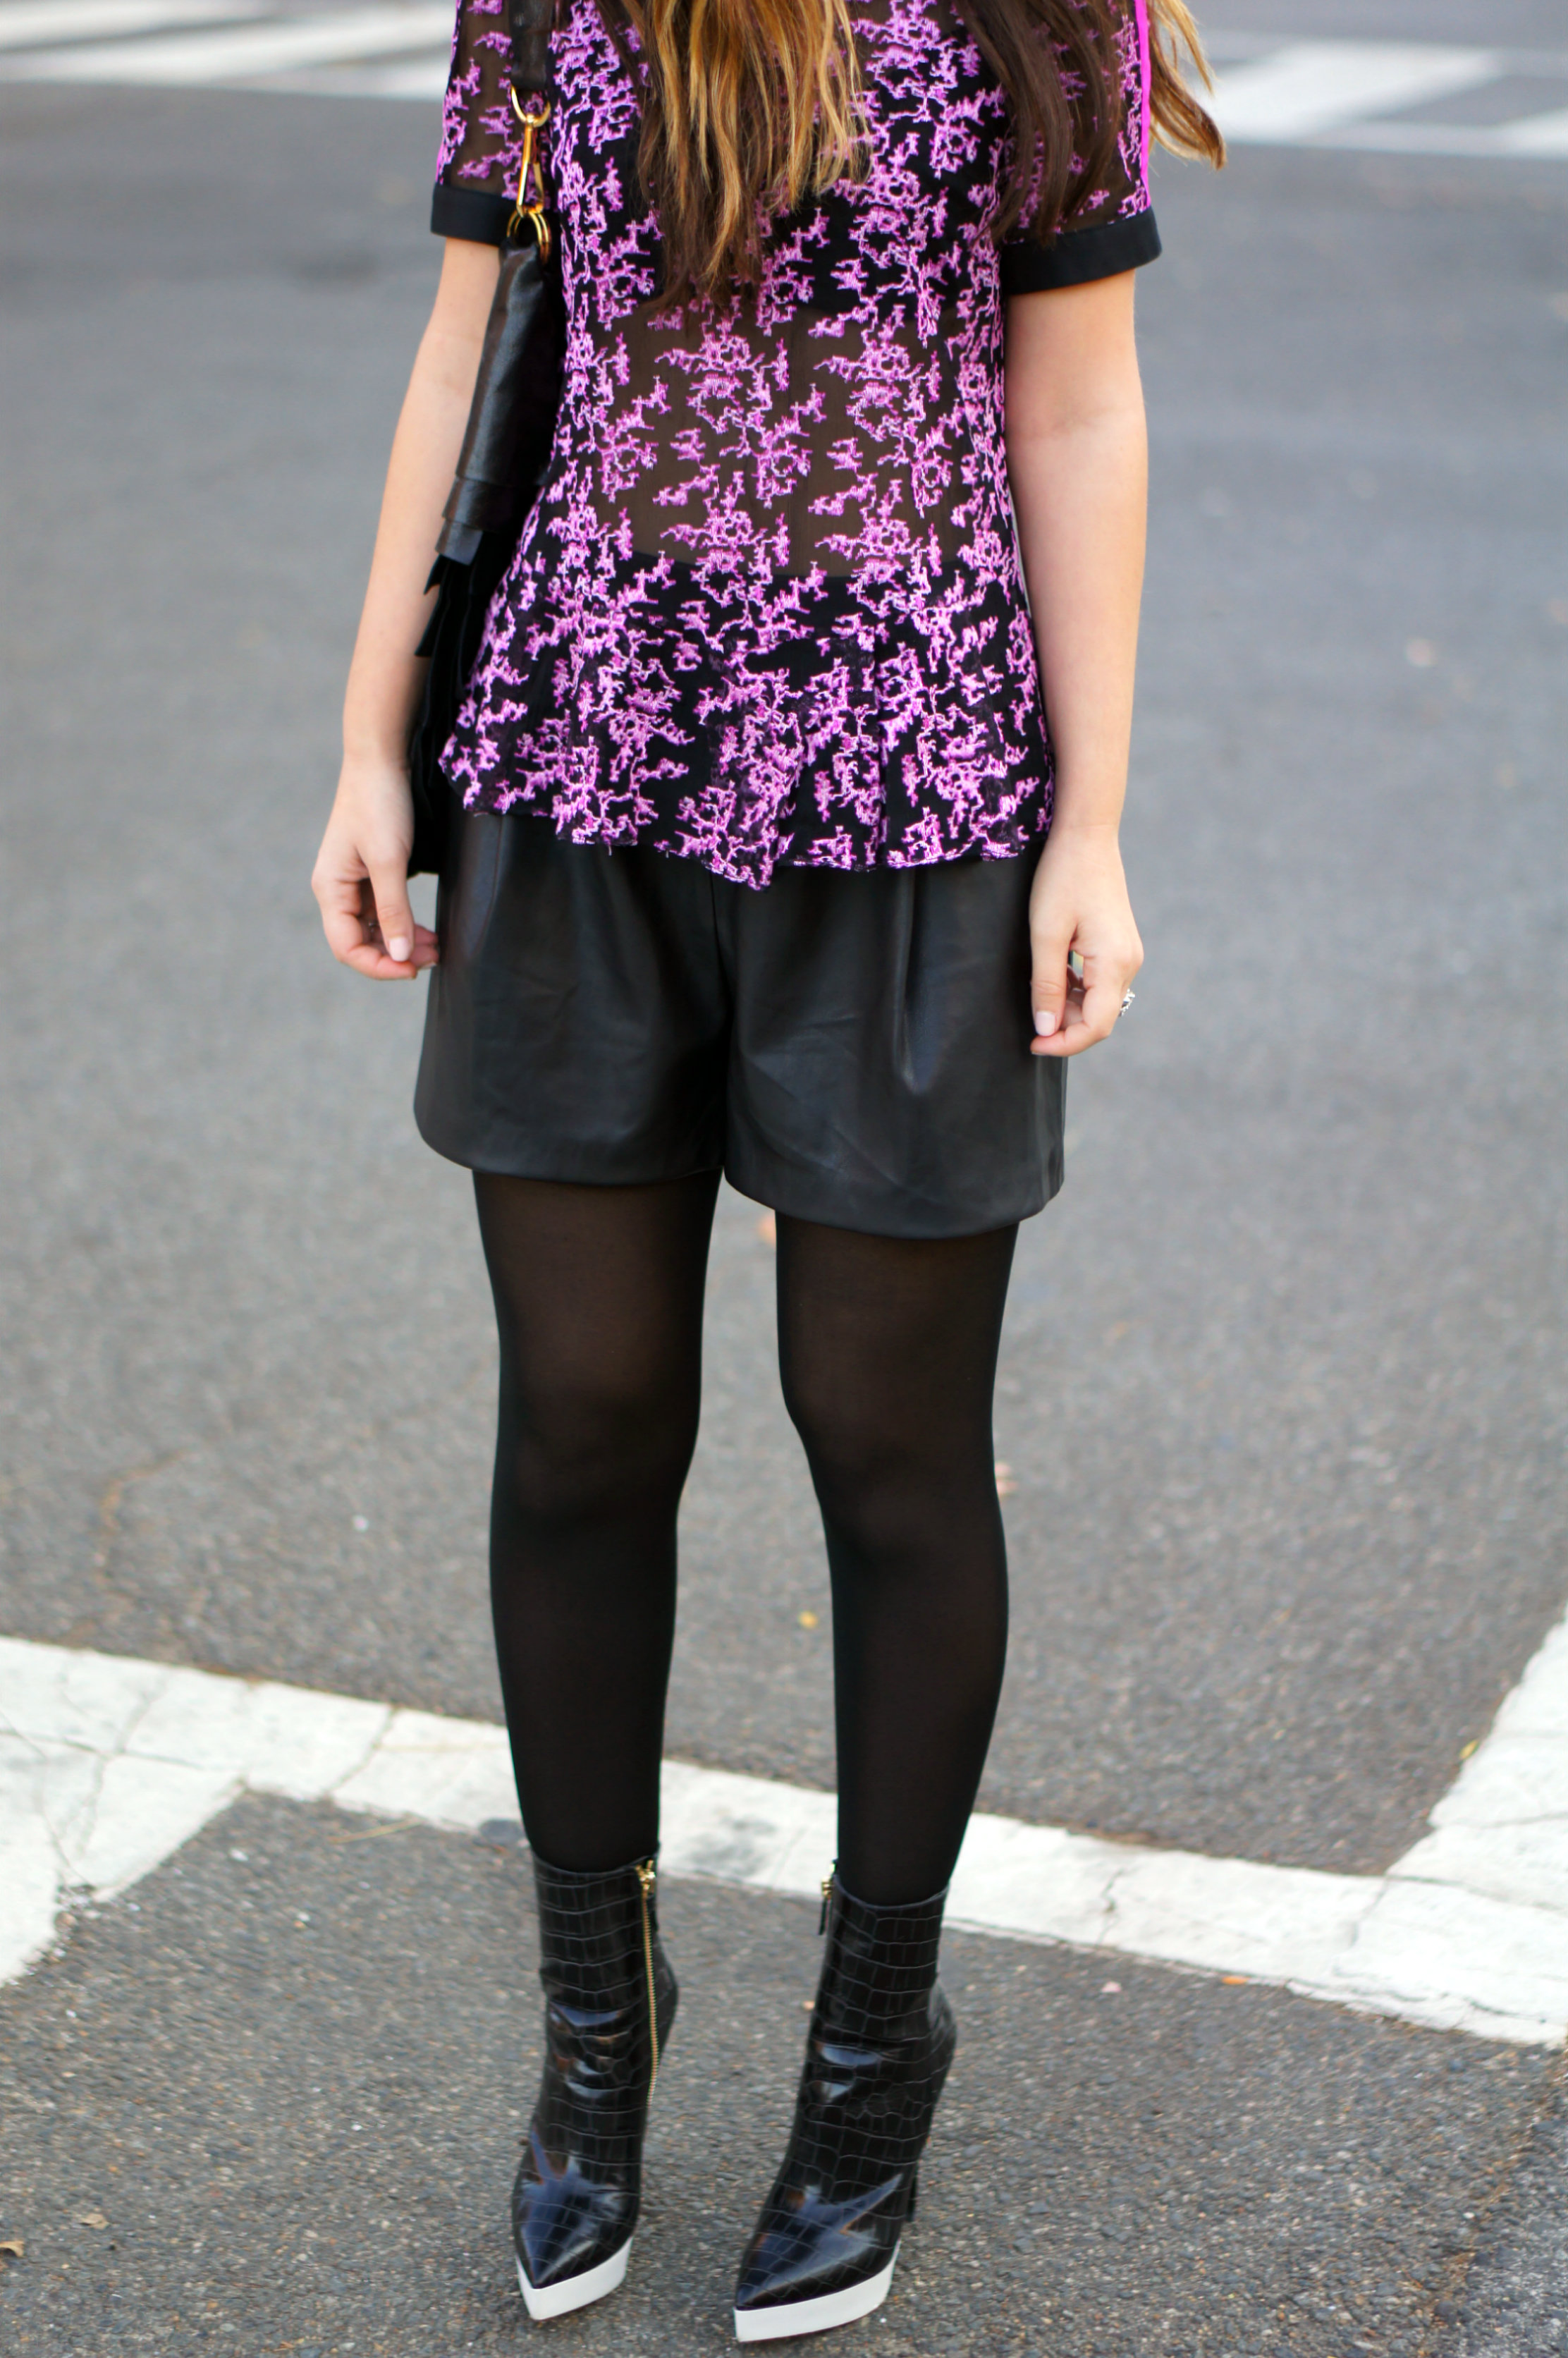 jennifer chun, nyc designer, peplum top, embroidered top, chiffon, purple, holiday look, holiday style, leather shorts, stella mccartney, booties, accessories, bag, YSL, yves saint laurent,